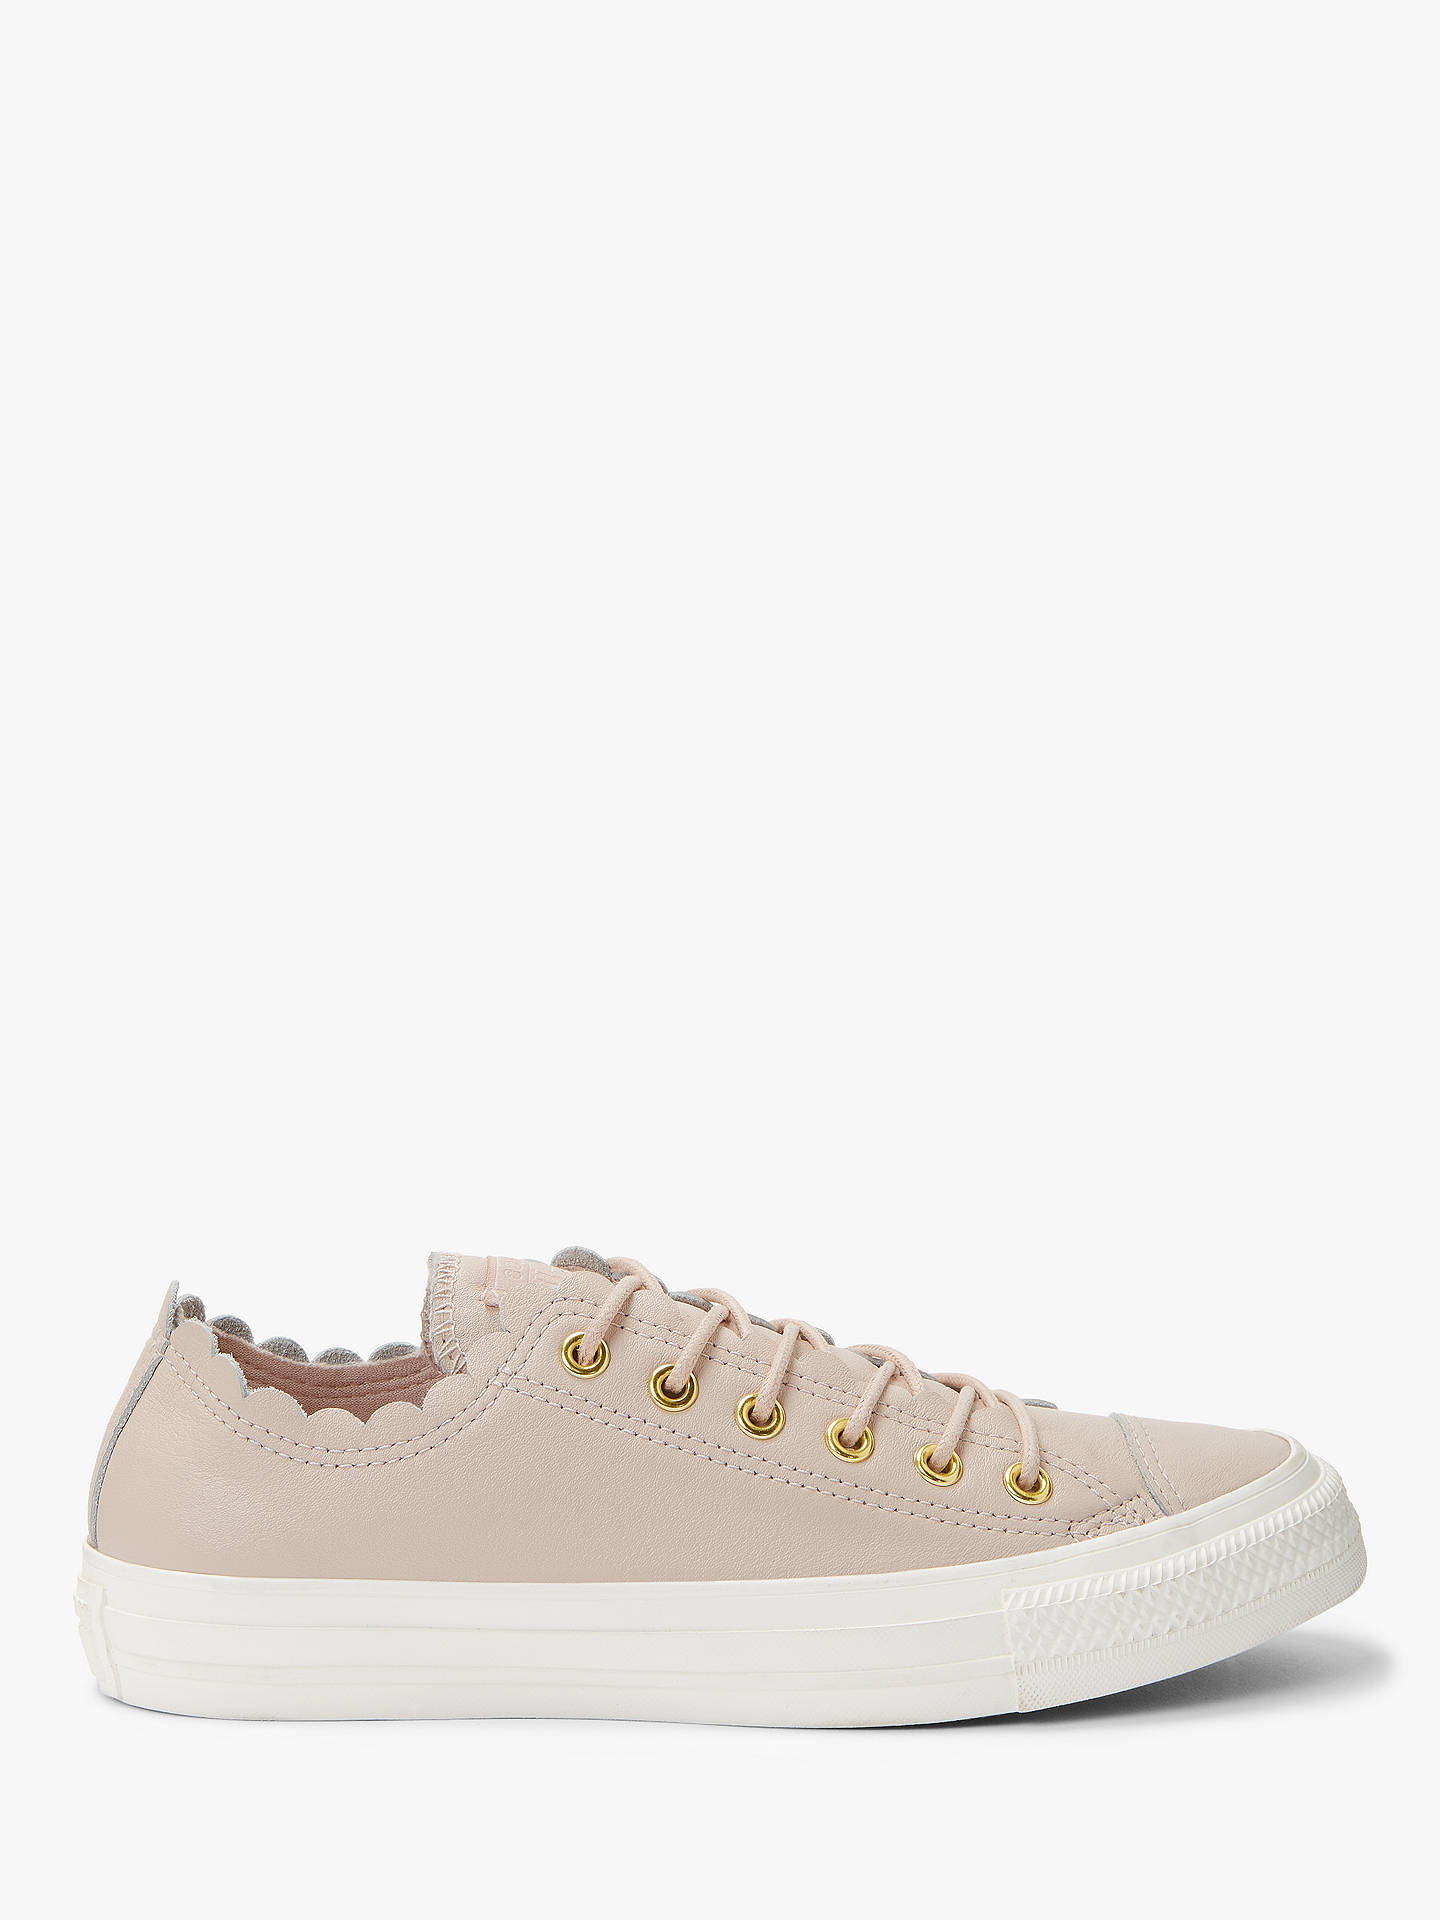 c0076bb99dfb Converse Women s Chuck Taylor Scalloped Trainers at John Lewis ...